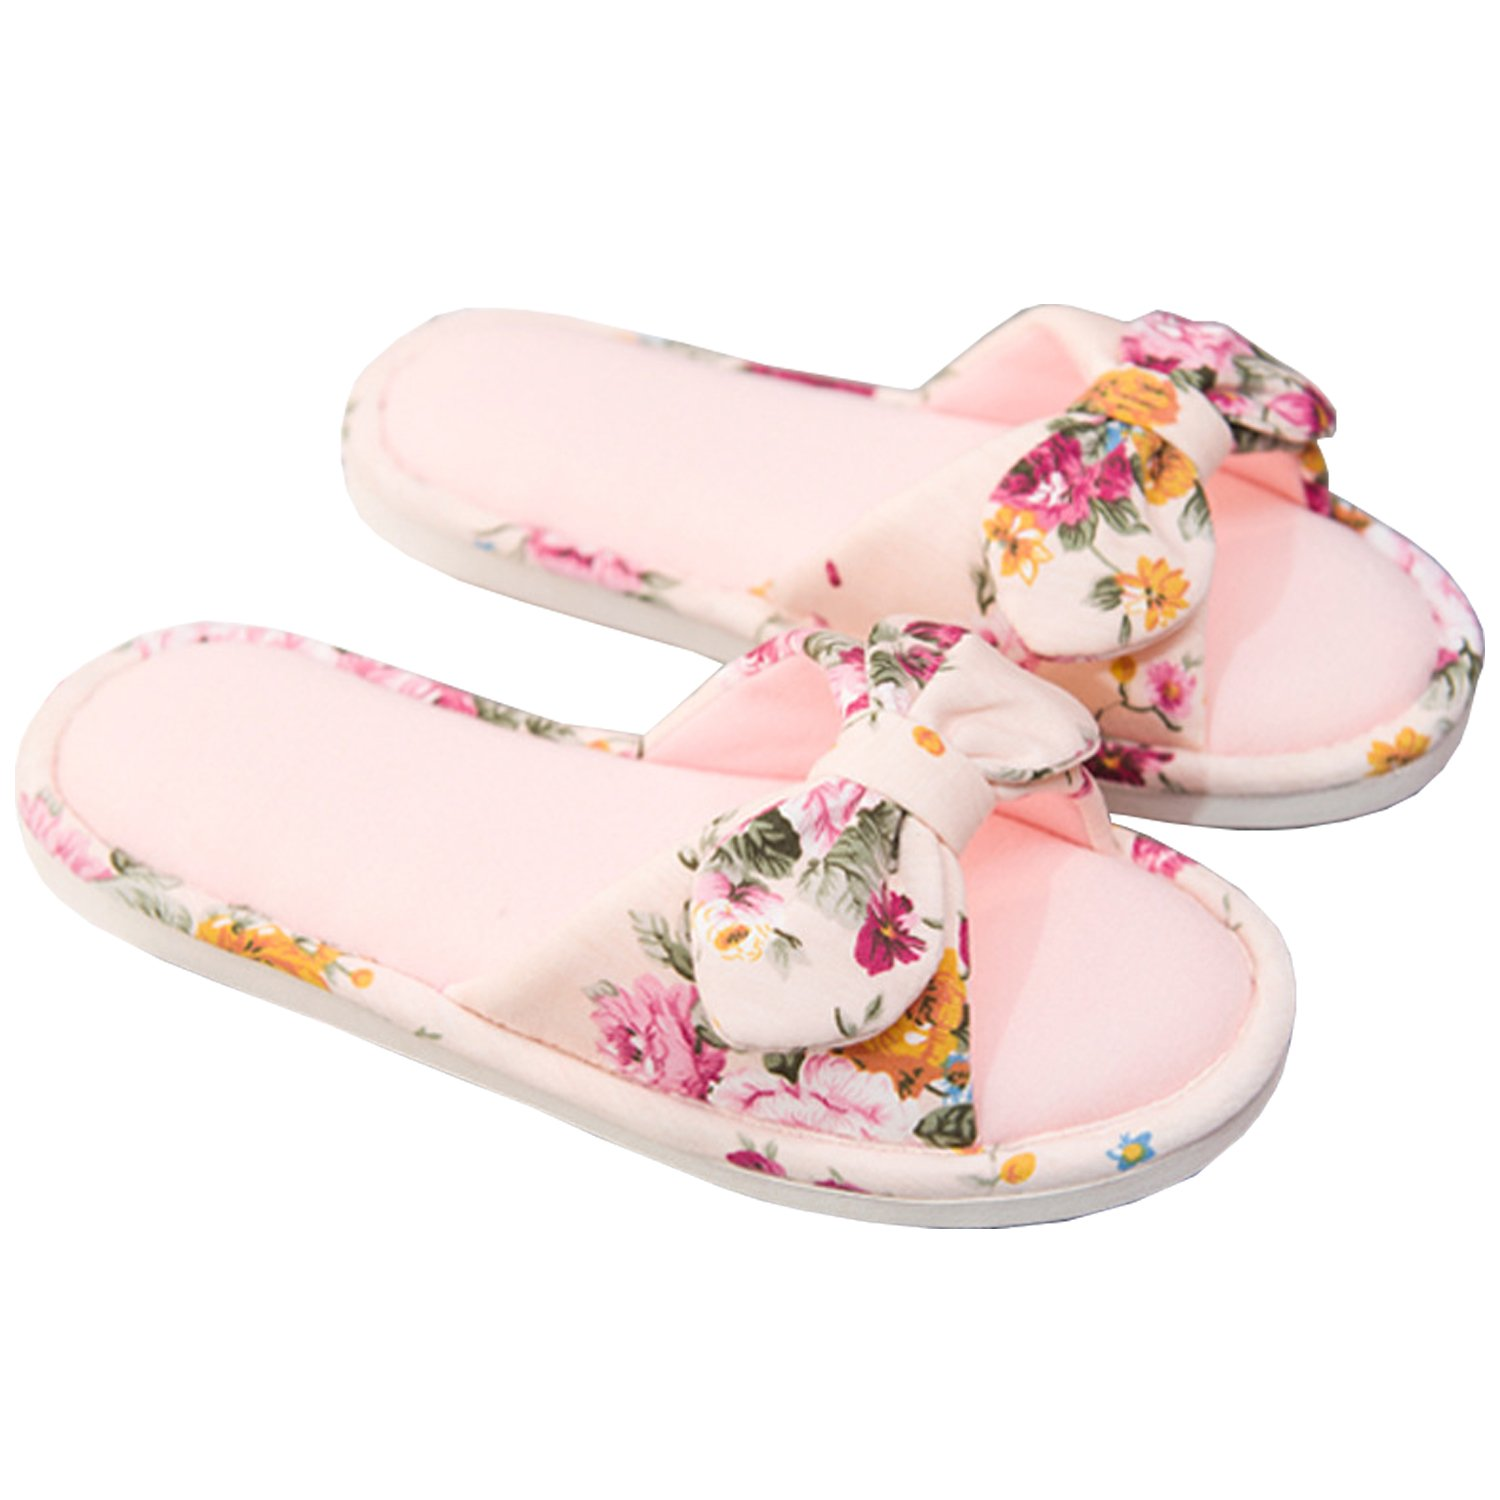 xsby Open Toe Indoor Slippers, Women Fashion Floral Open-Toes Cotton Flax Flat House Slipper Pink-B 38-39